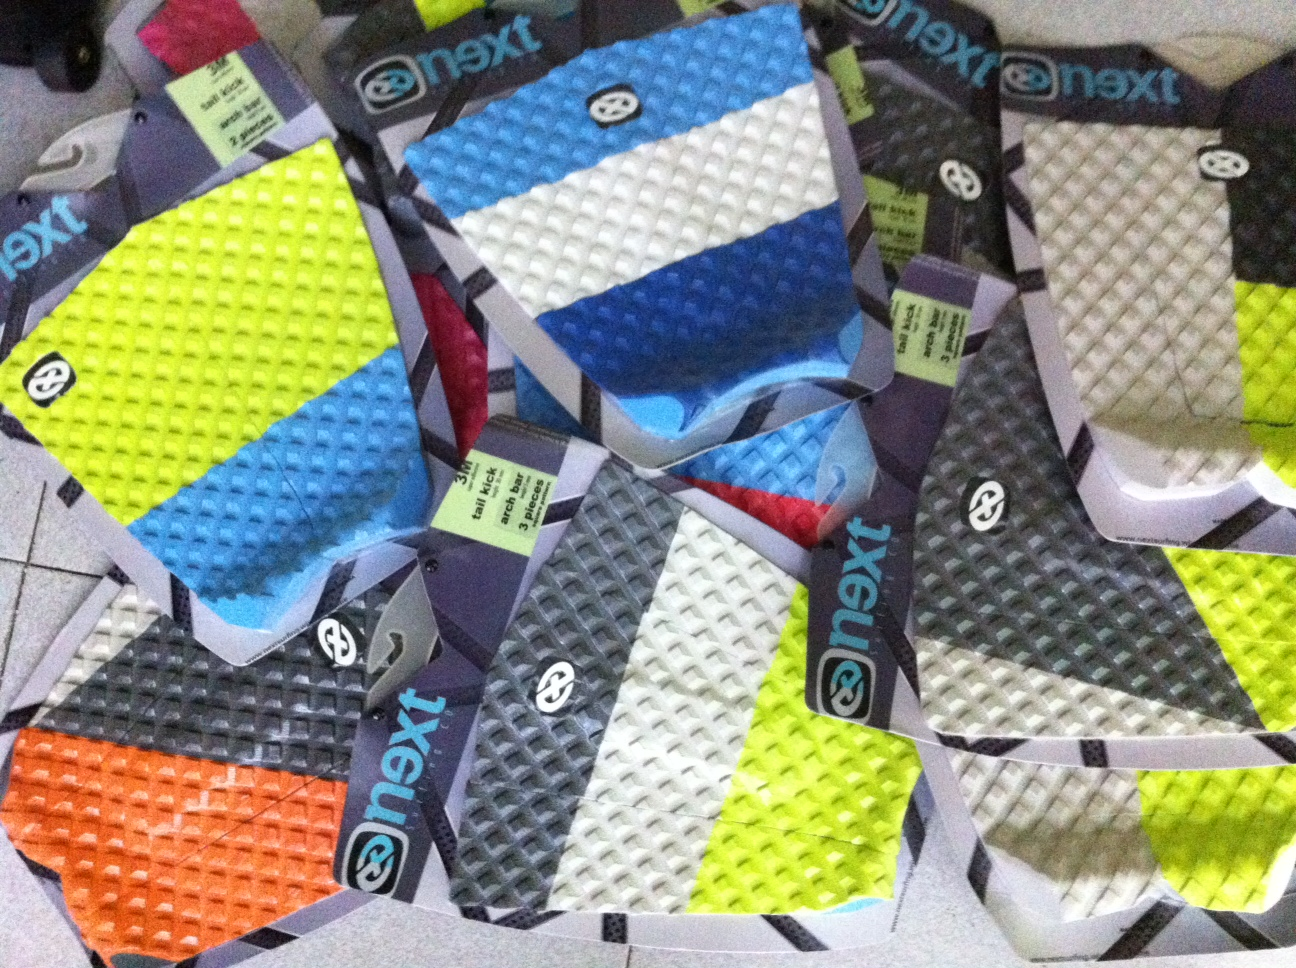 next traction pads